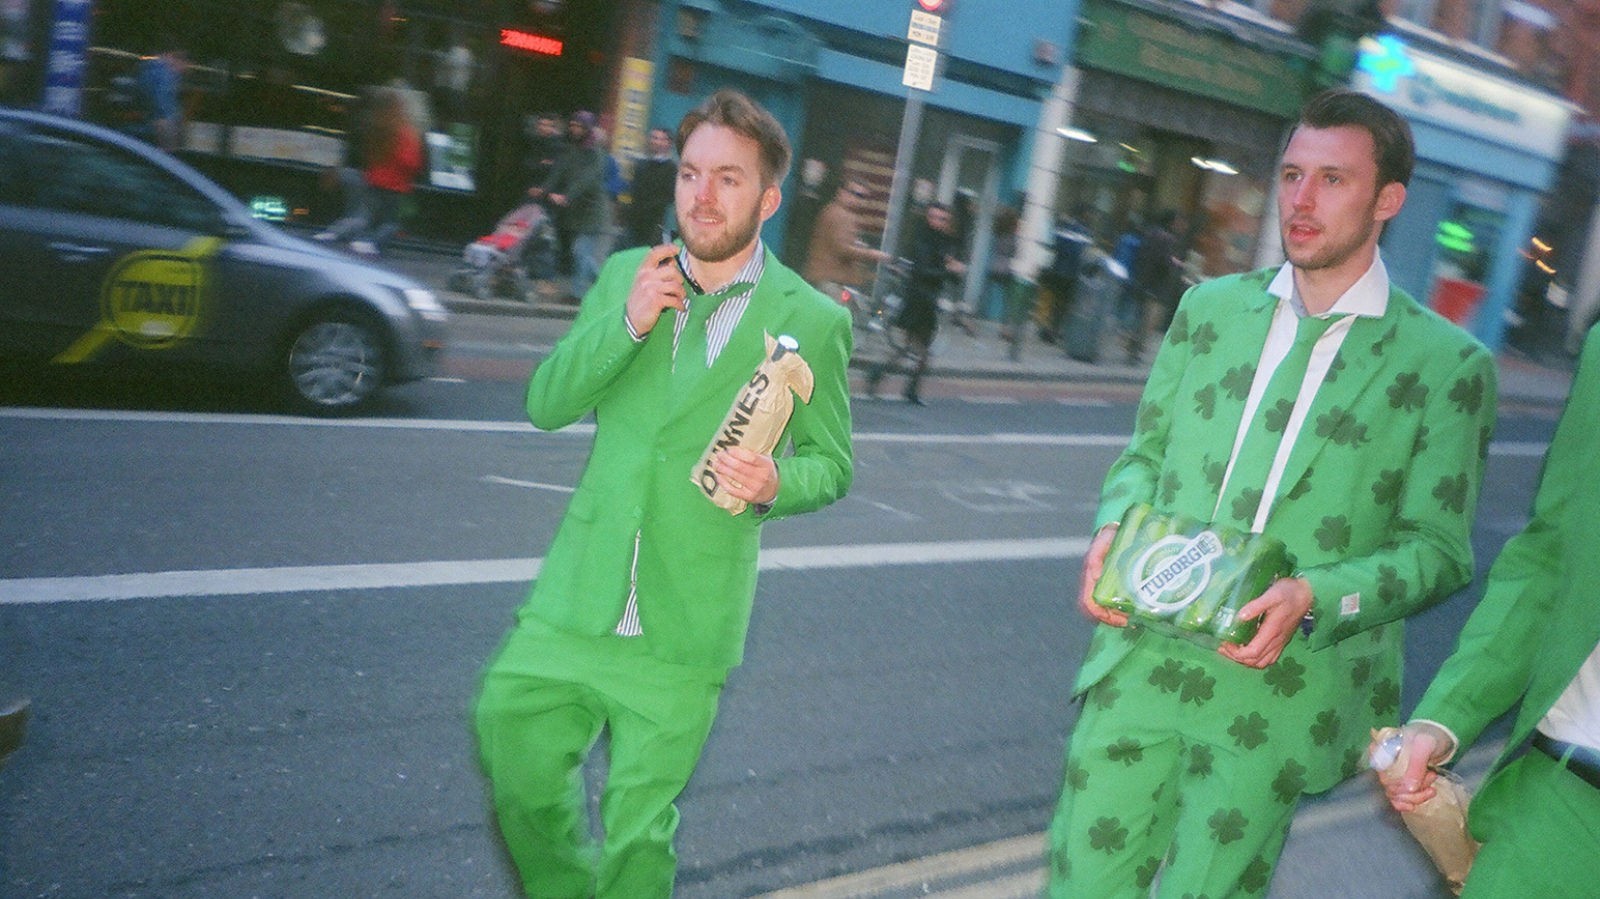 buckfast and paddywagons: photographing irish youth on saint patrick's day